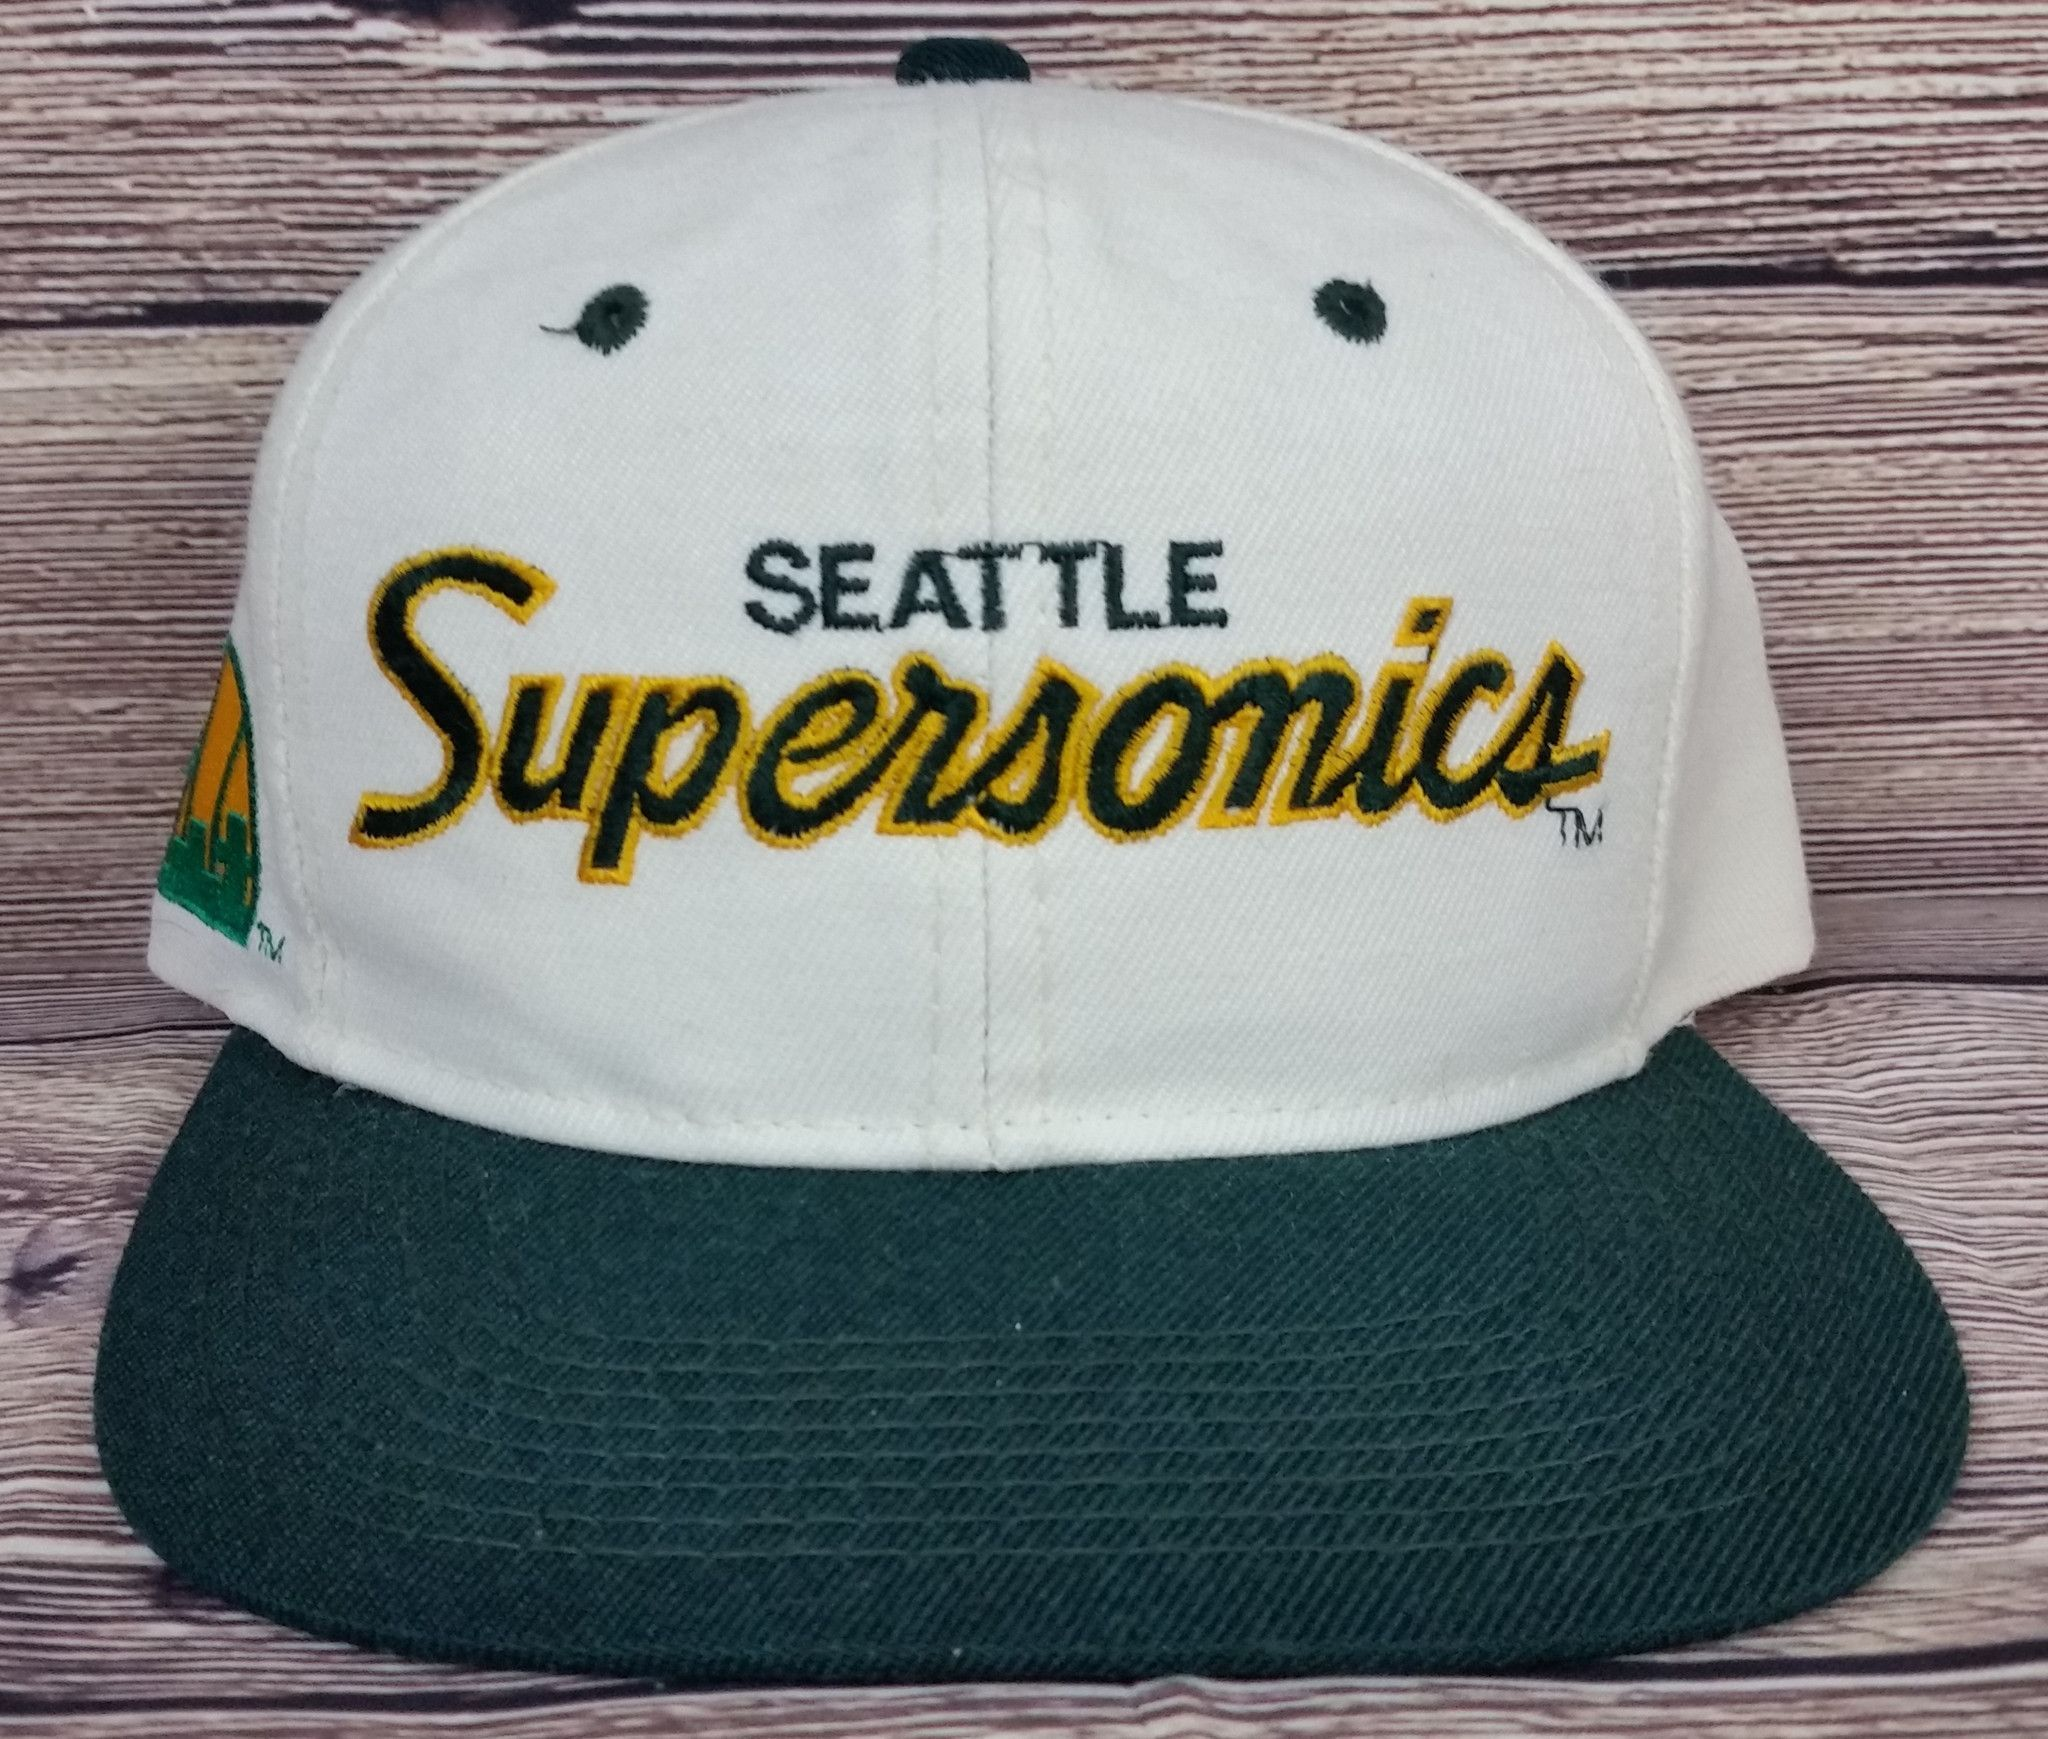 Seattle Supersonics Vintage Snapback Sports Specialties Script Hat NBA Wool  Cap 4c1b1465325f